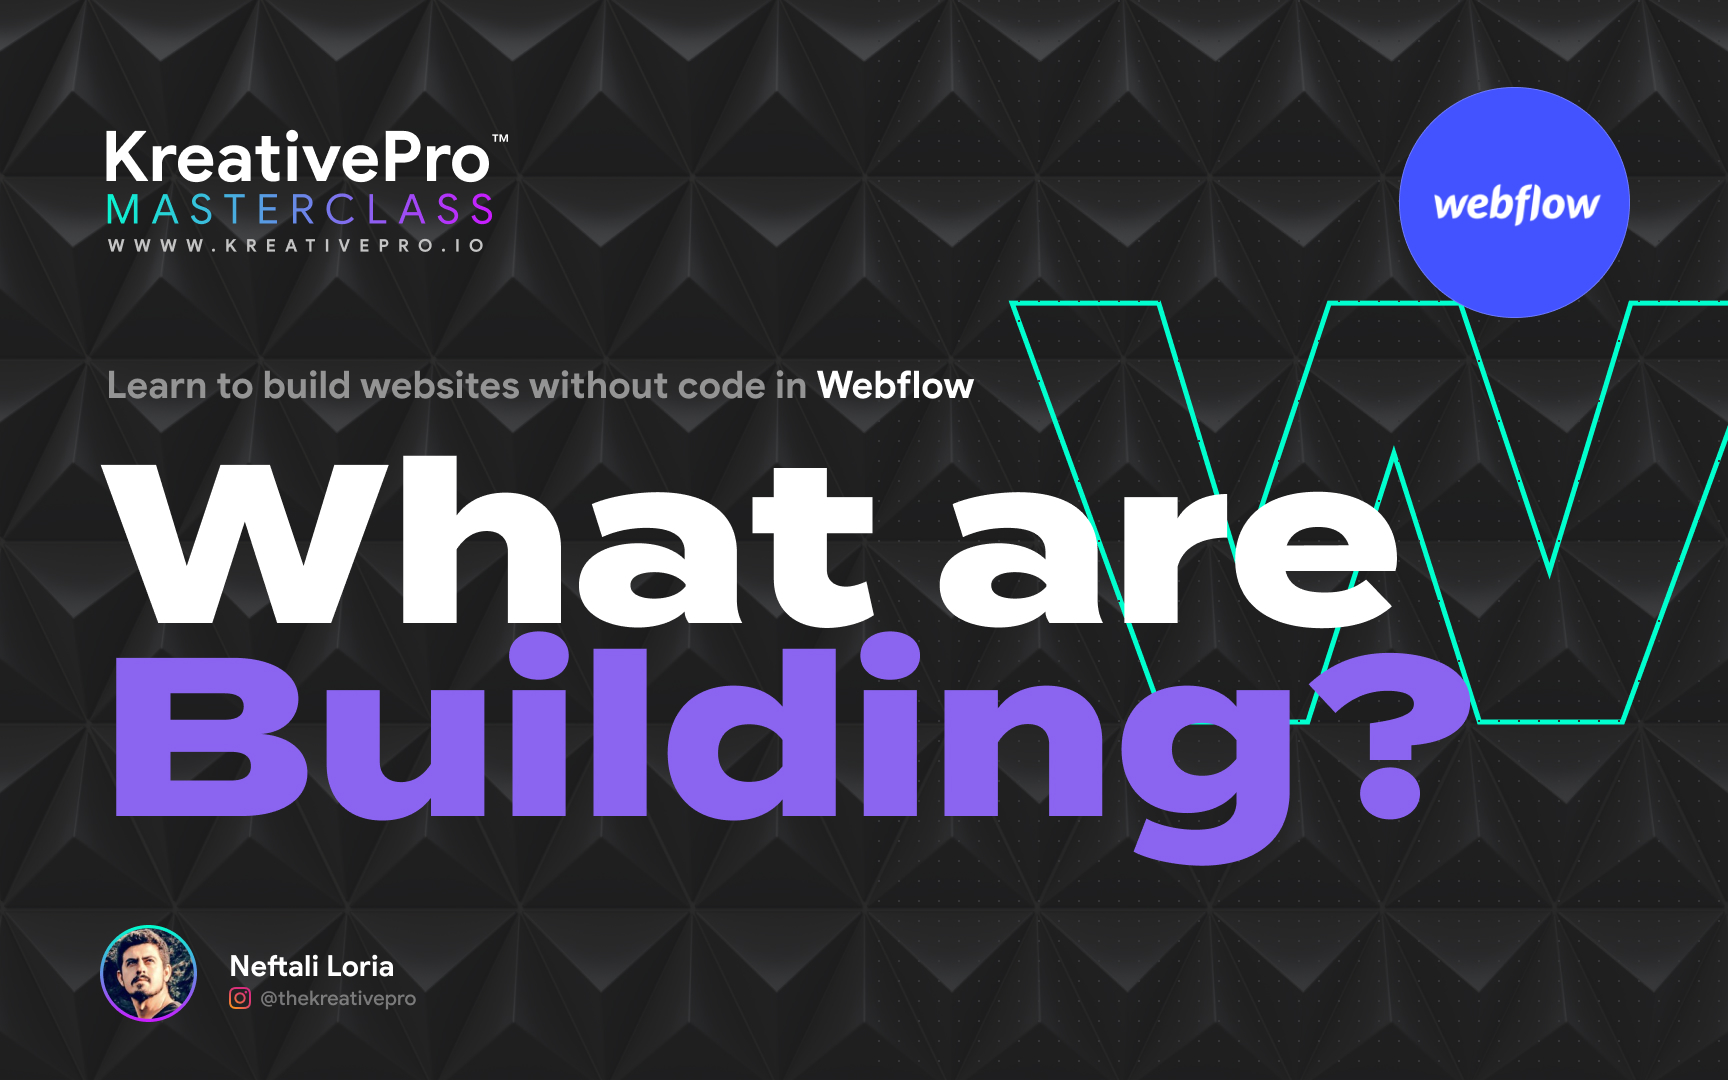 Webflow 1.0 - What are we building?